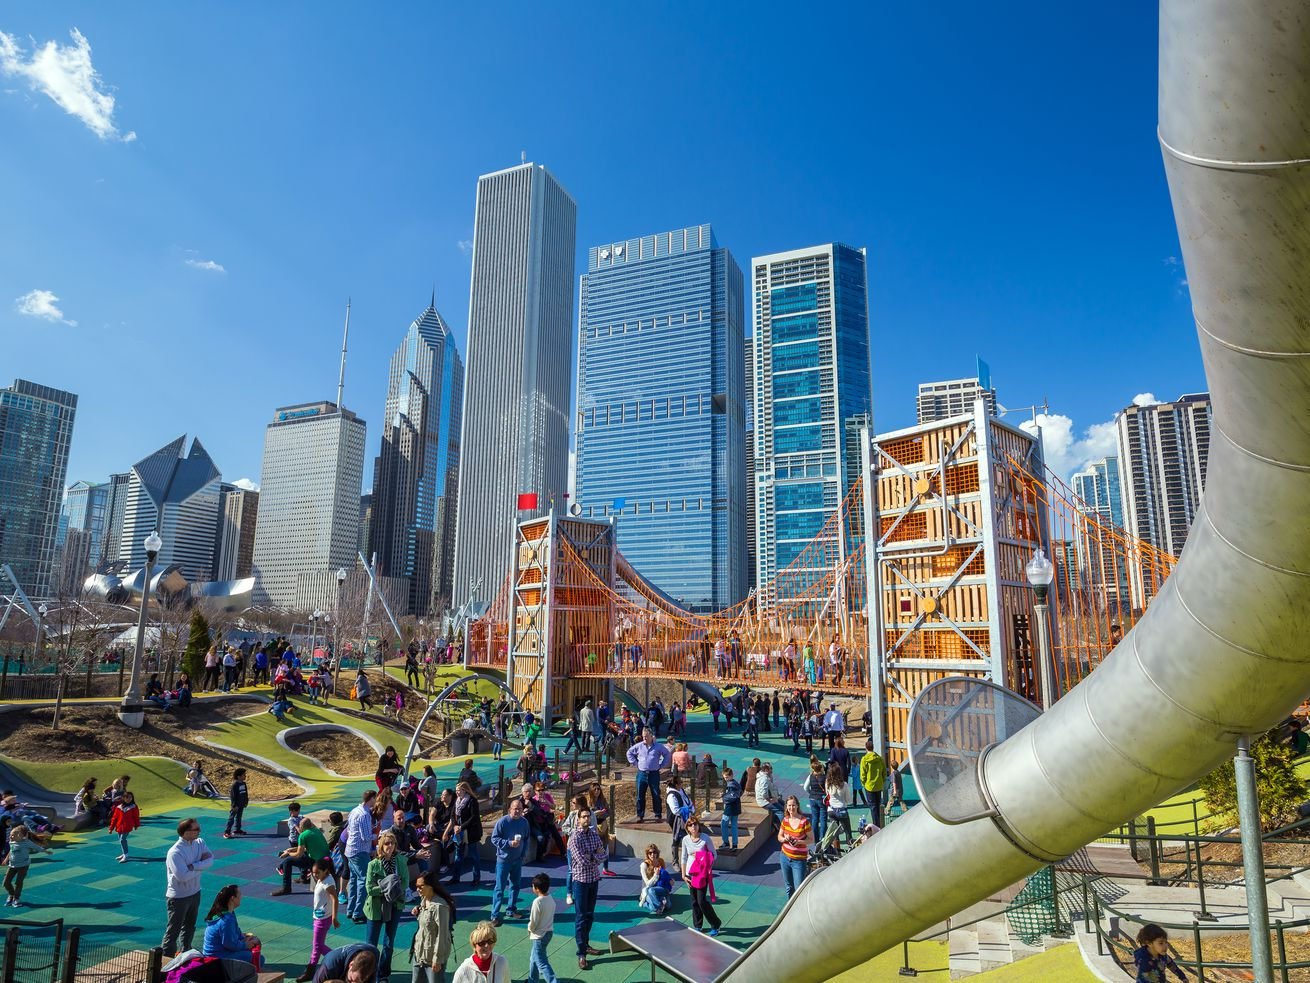 Downtown Chicago's Maggie Daley Park.